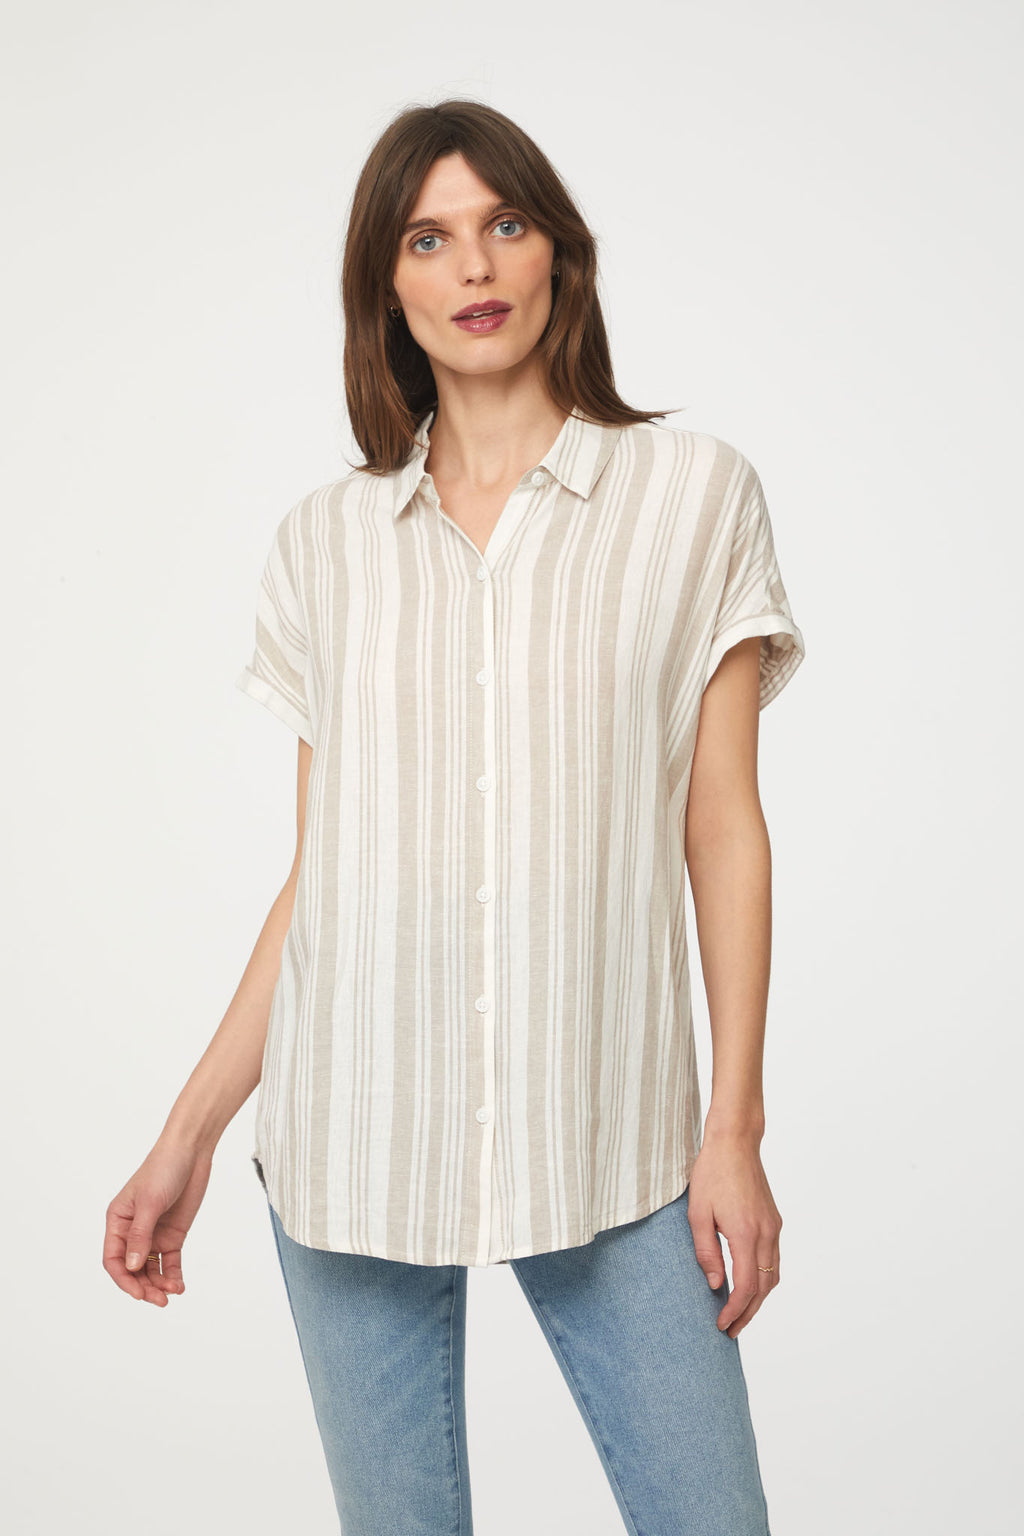 SPENCER SHIRT - SAND SHELL